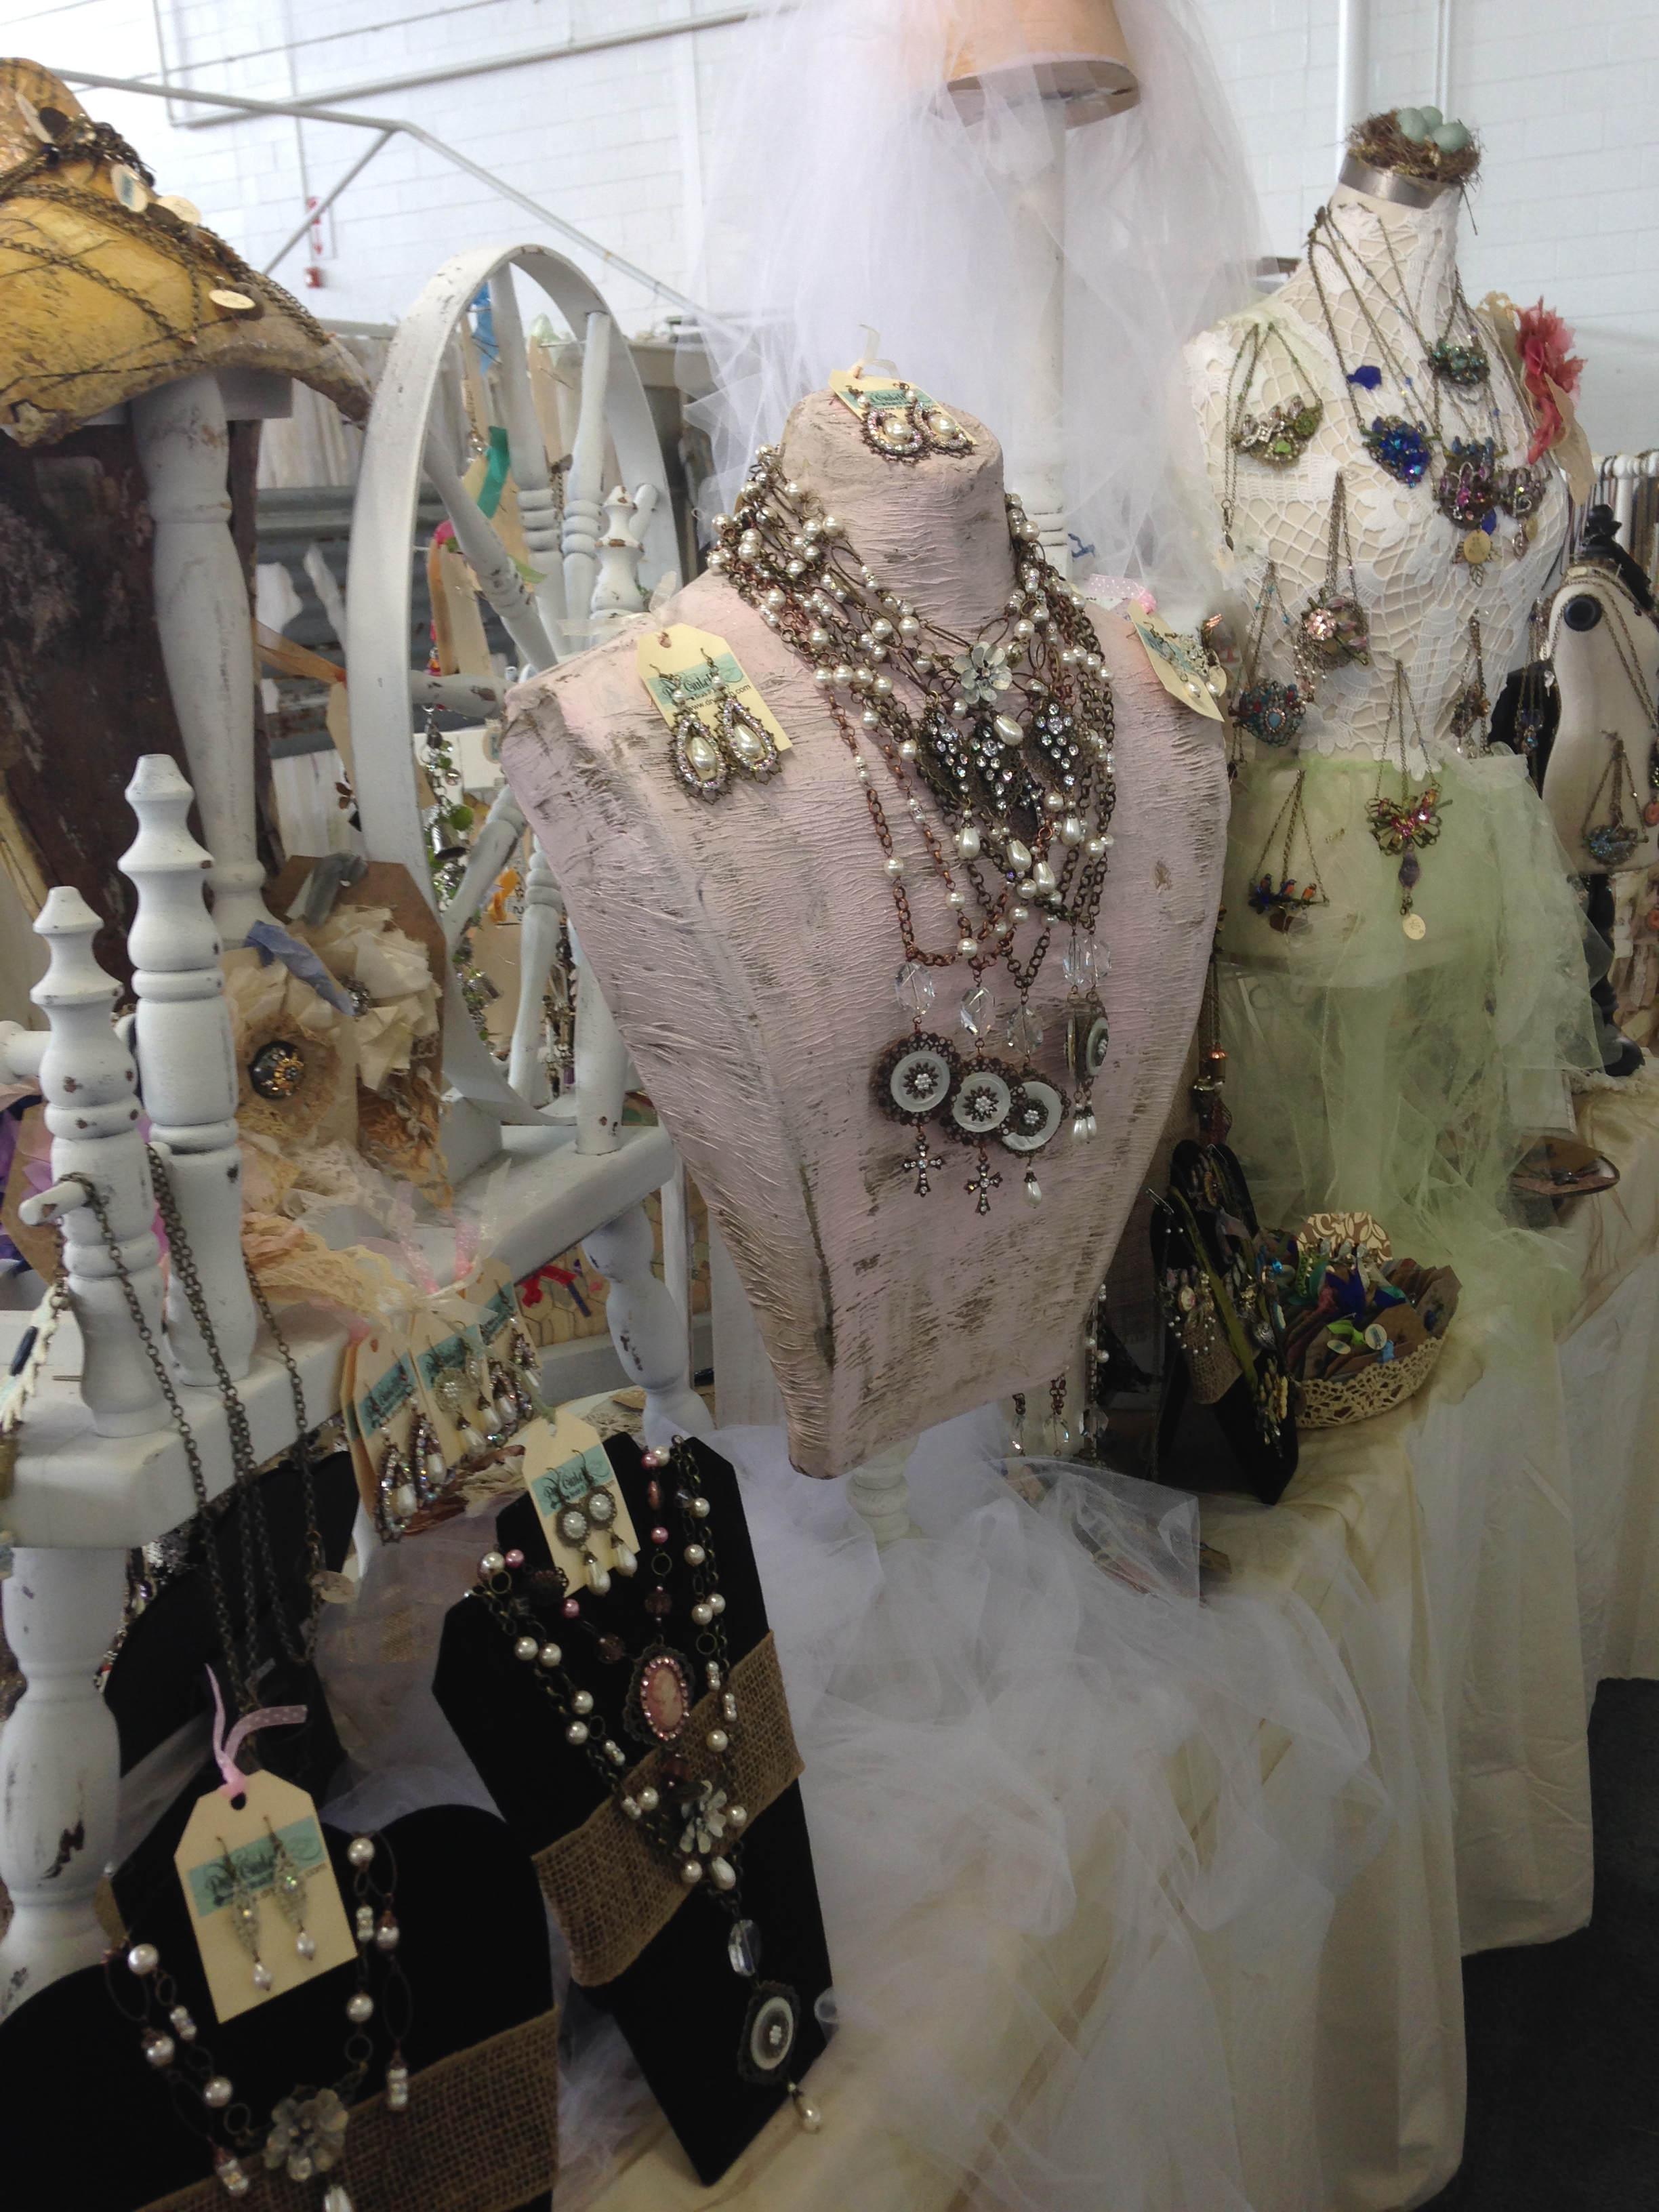 Family Jewelry Business Vintage Display